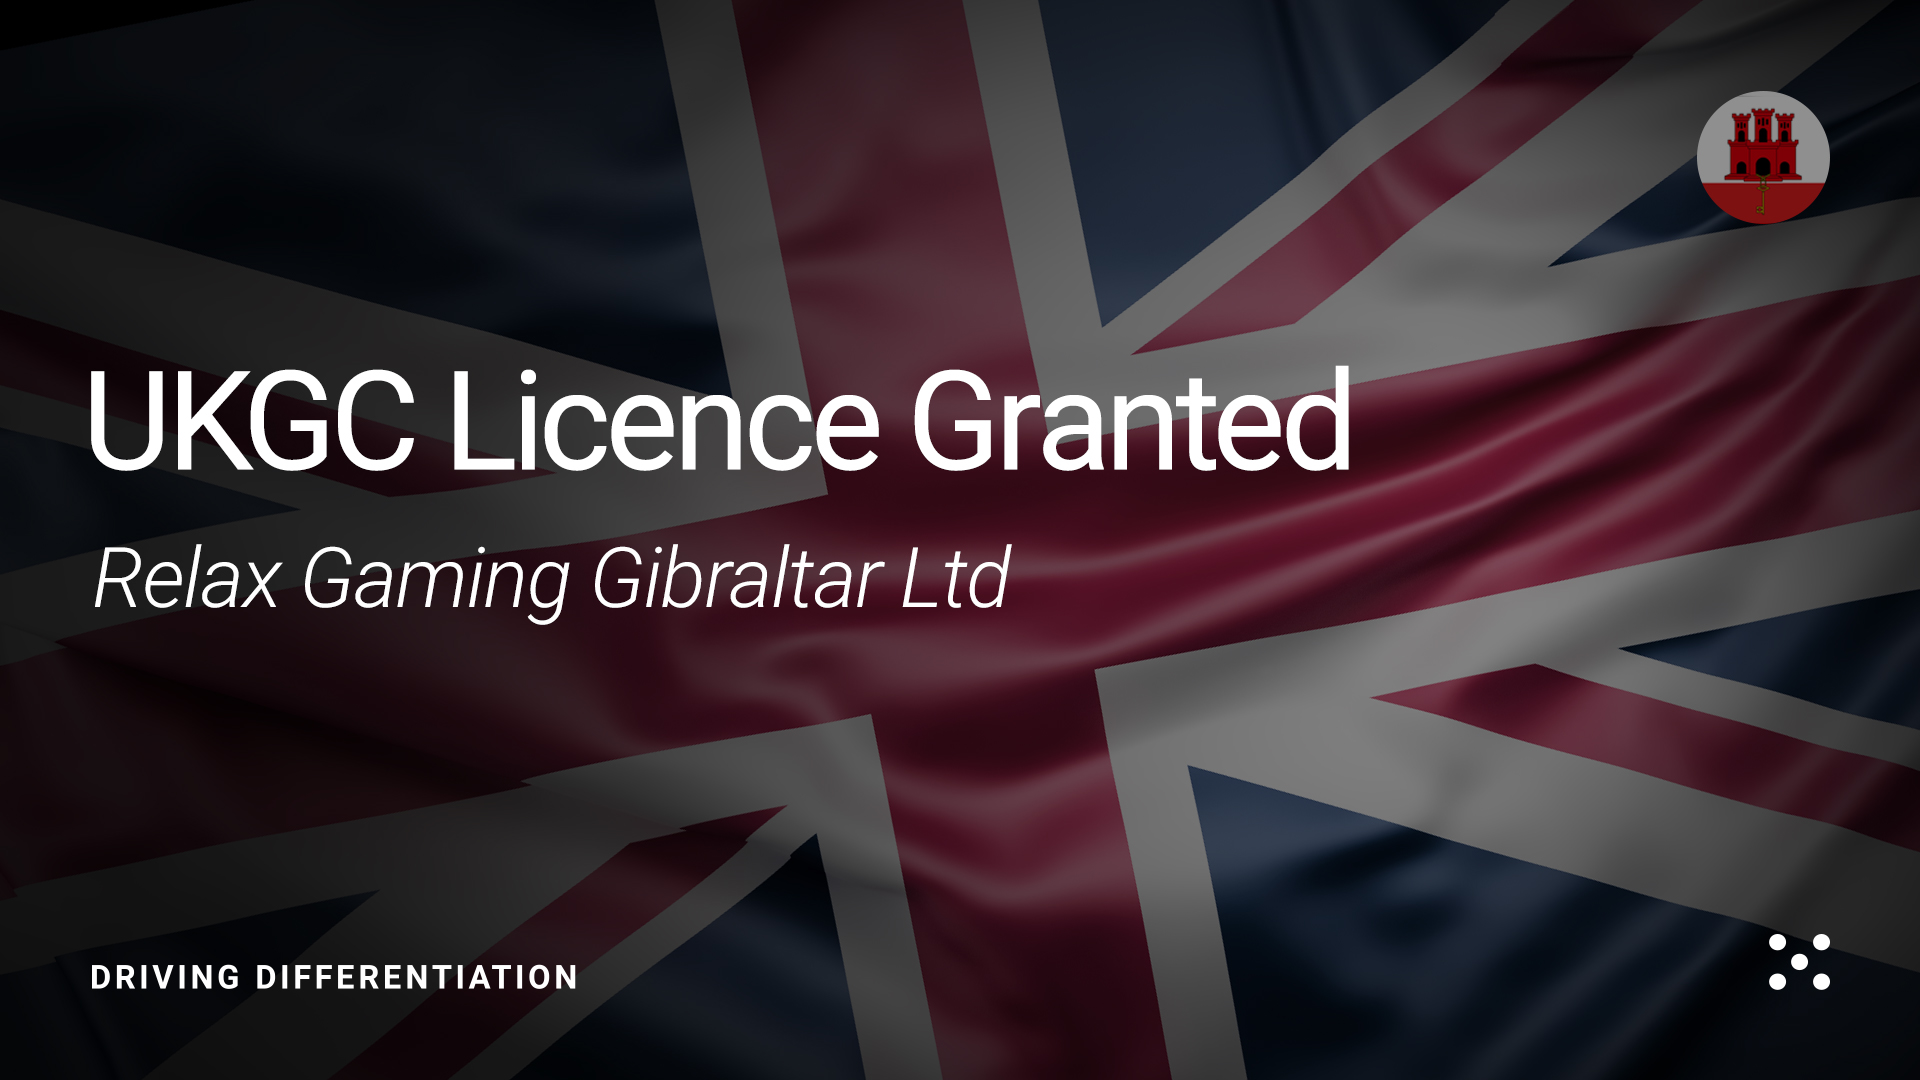 Relax Gaming Gibraltar Ltd secures coveted UKGC licence